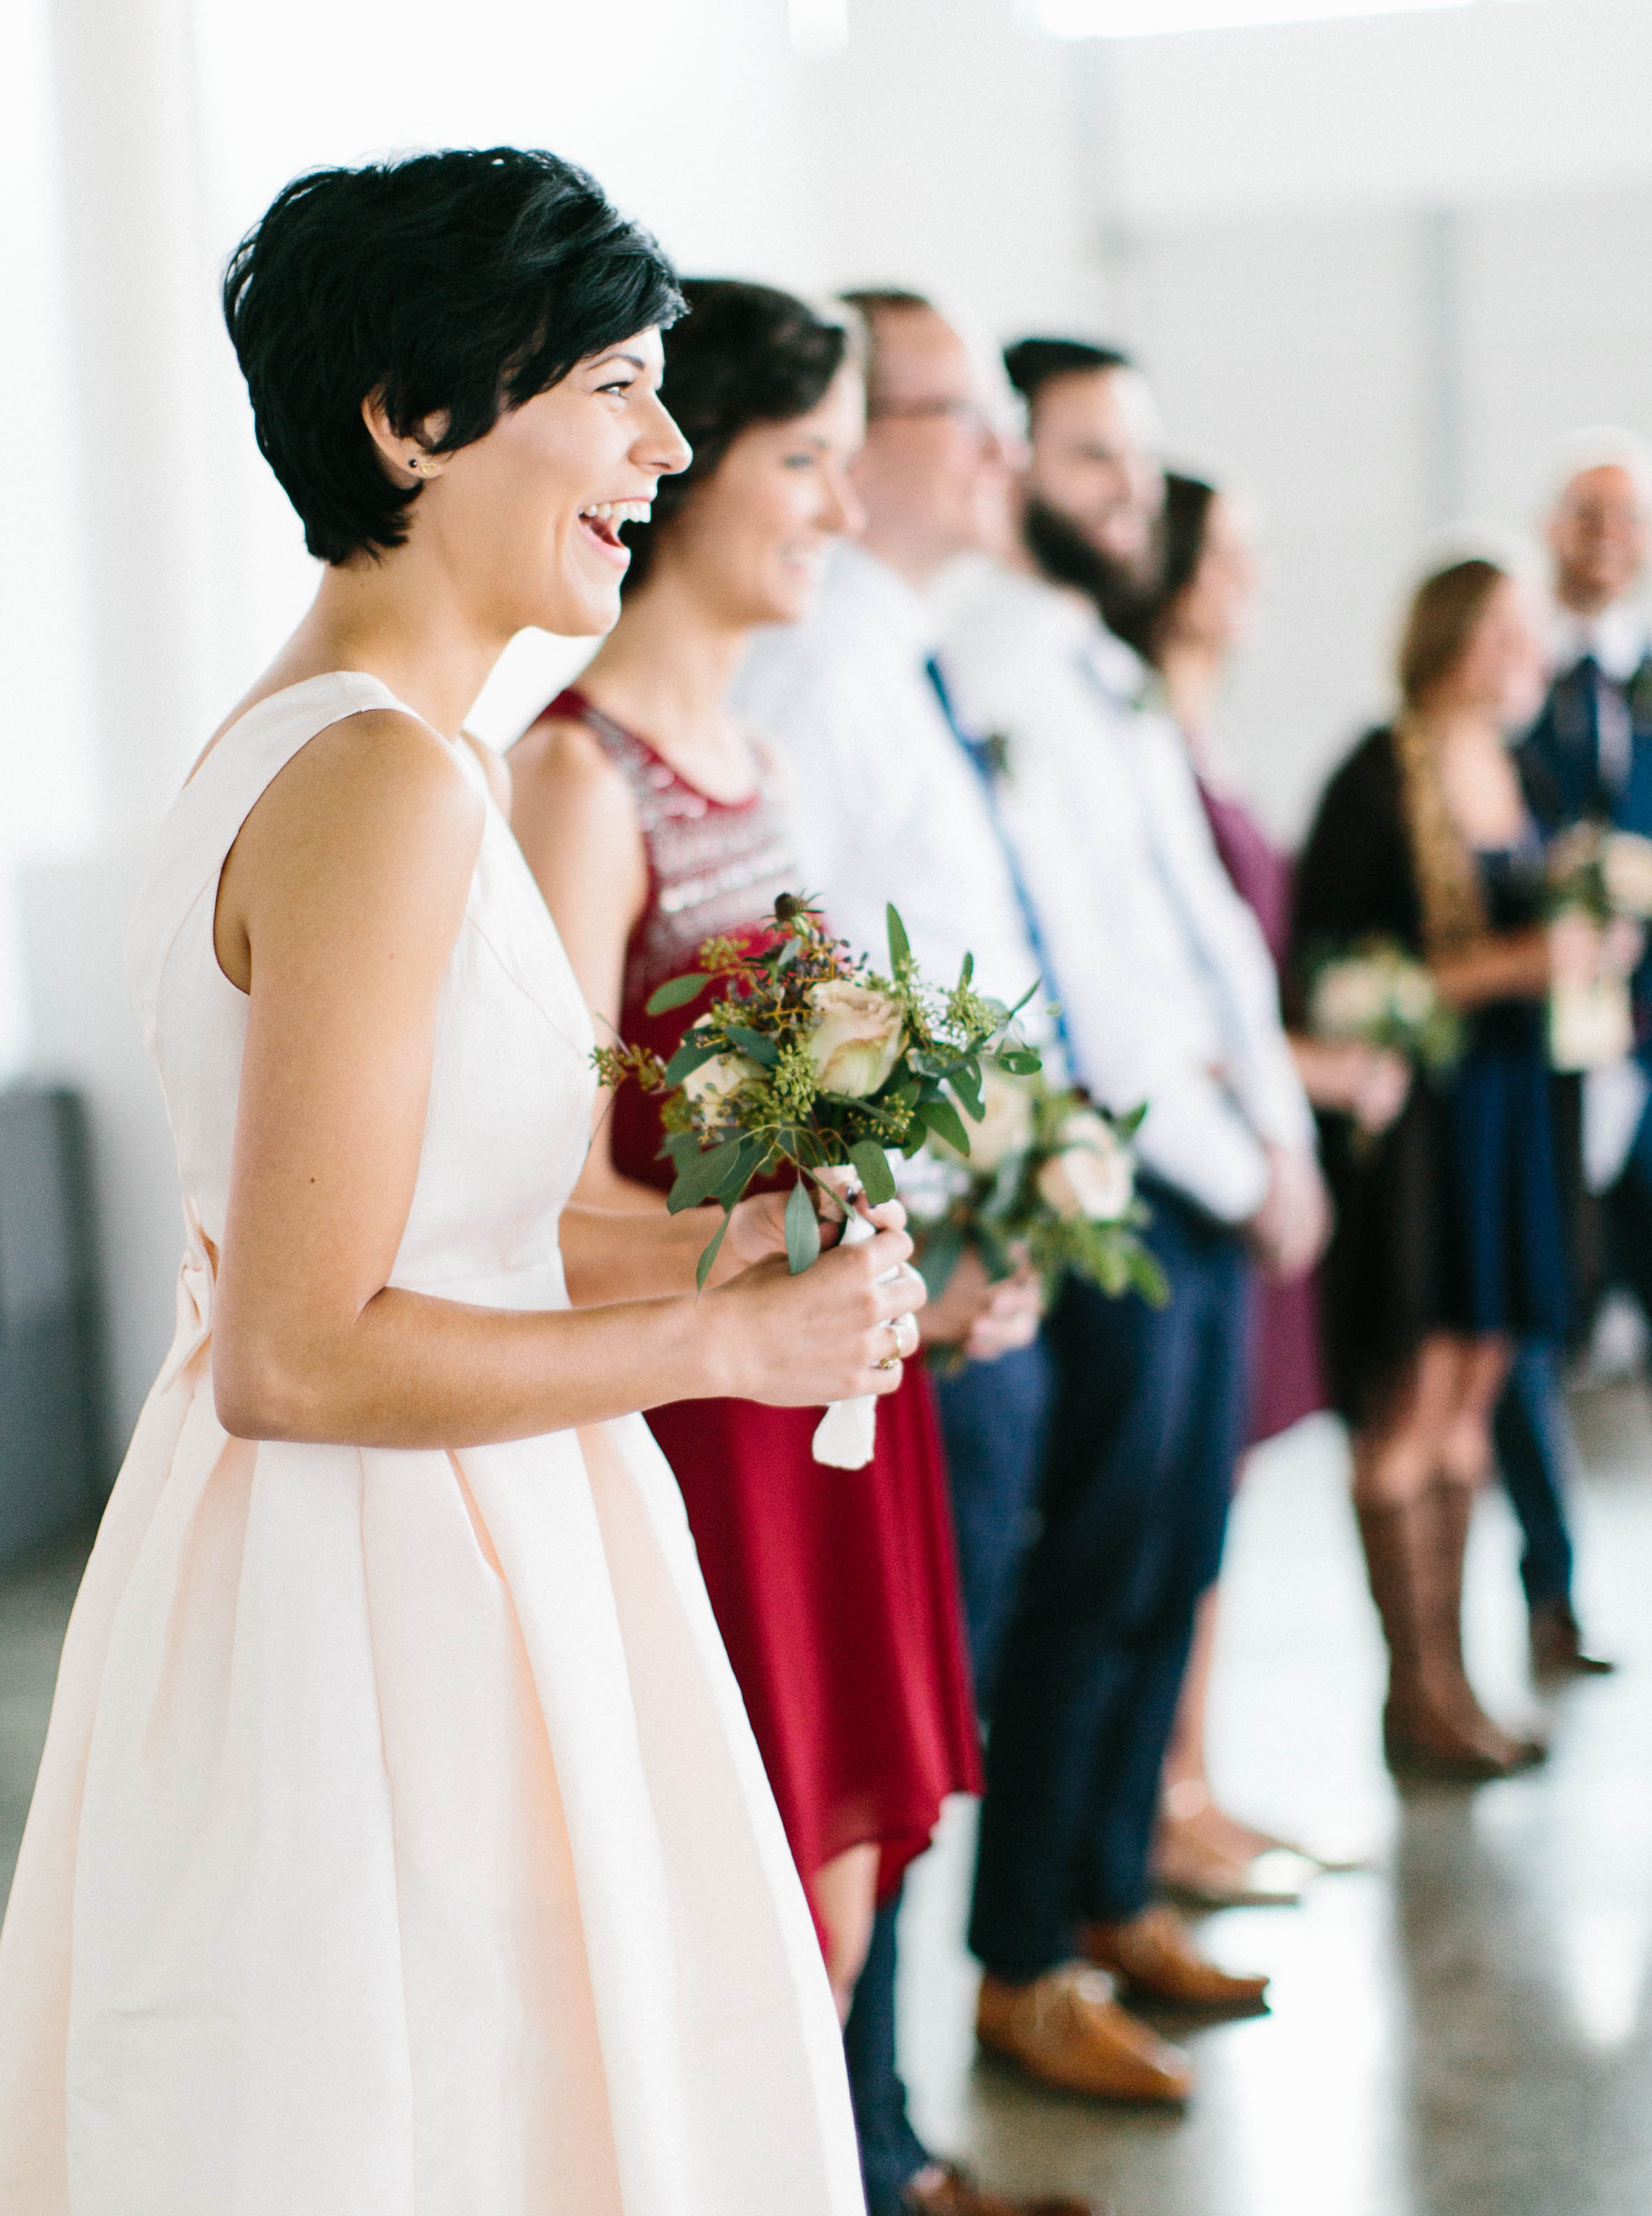 Intimate Wedding Ceremony in Nashville // Destination Floral Design in the Southeast